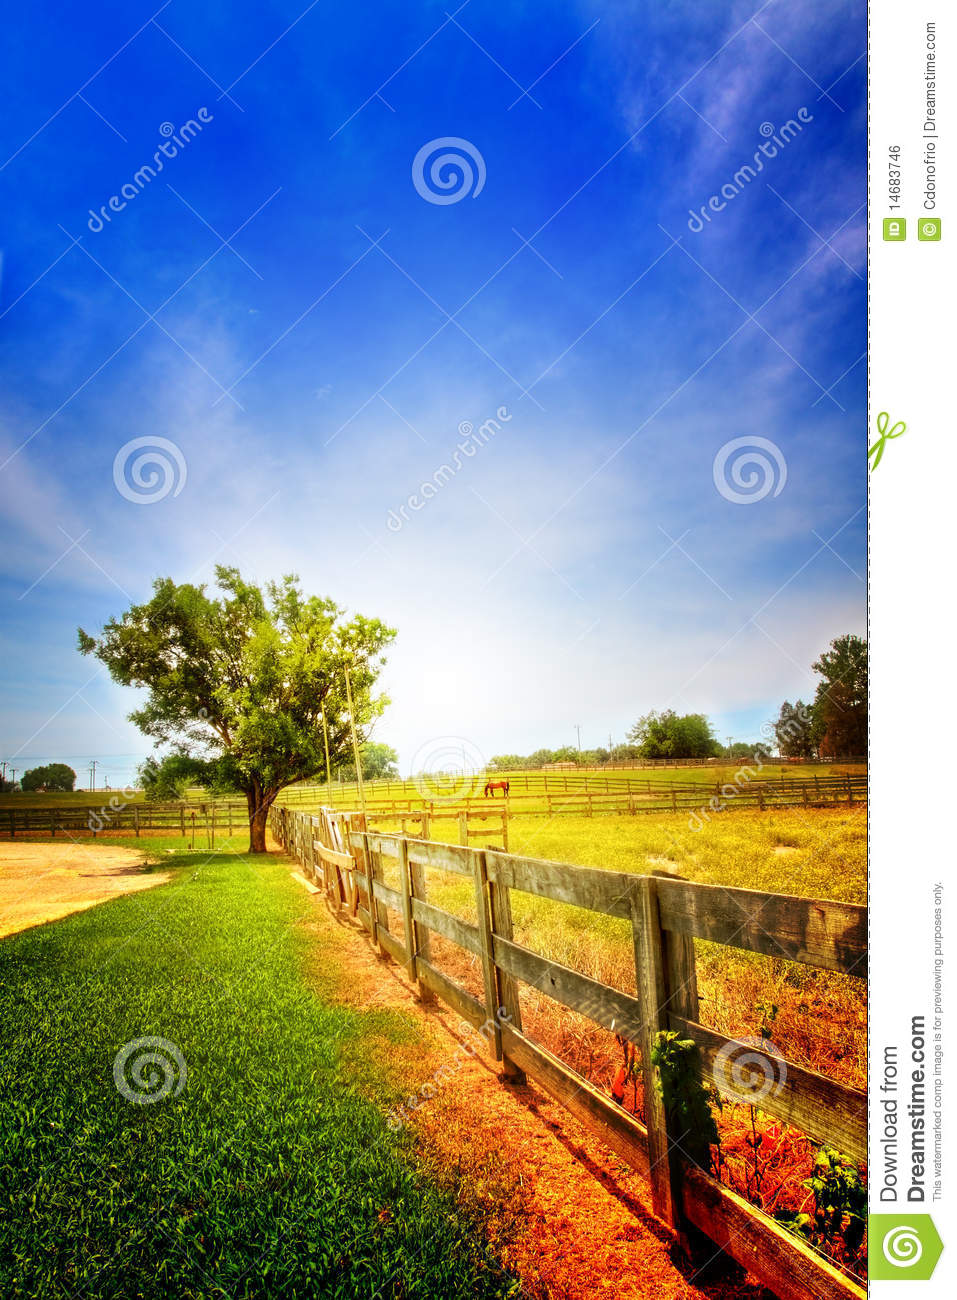 Country Scenery Royalty Free Stock Image Image 14683746